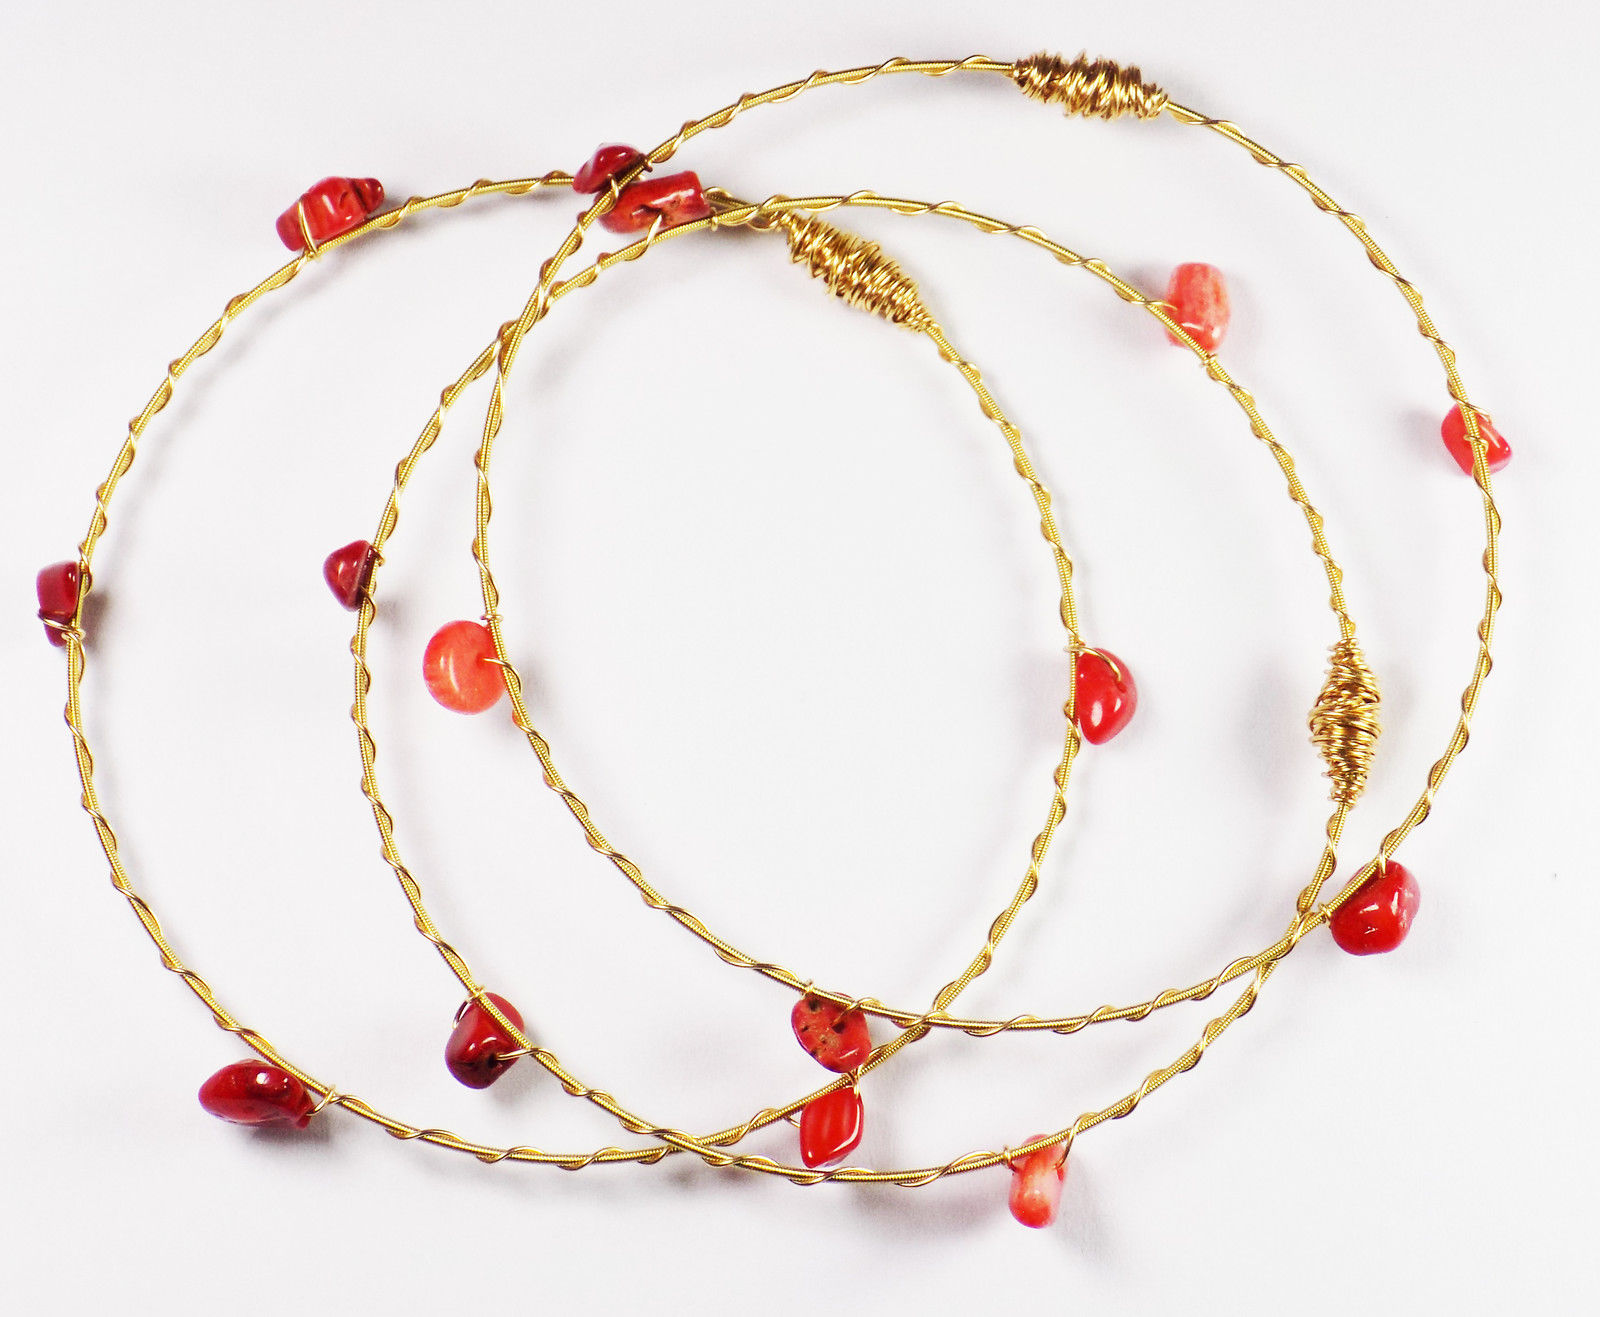 Restrung Jewelry Red Coral Bangles Hand Crafted Gold Recycled Guitar String and Gemstone Bracelets Set of 3 by Restrung Jewelry